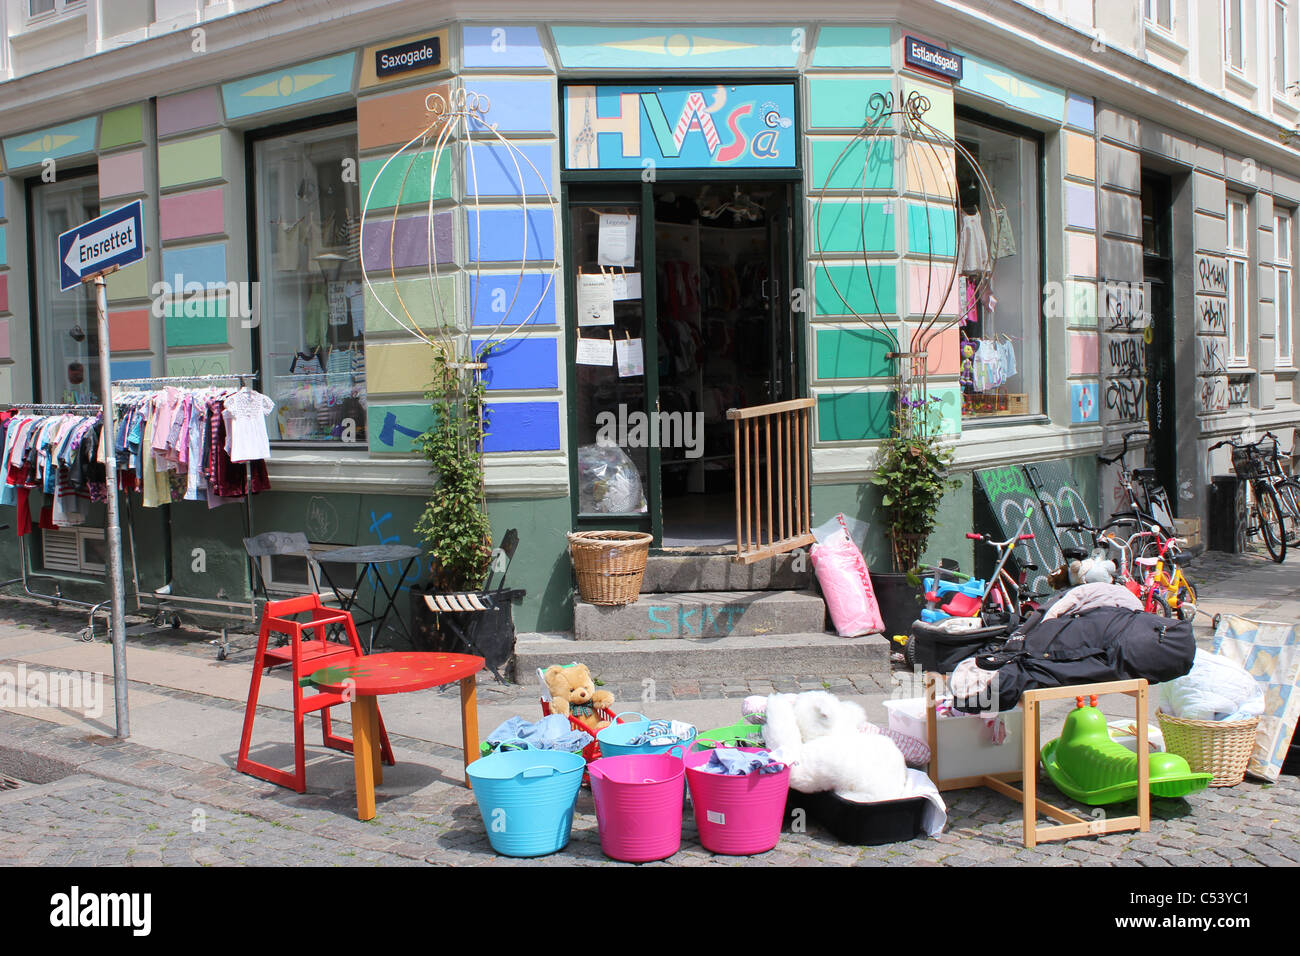 67c30a0e2 Secondhand shop selling children´s clothes and toys in Vesterbro ...